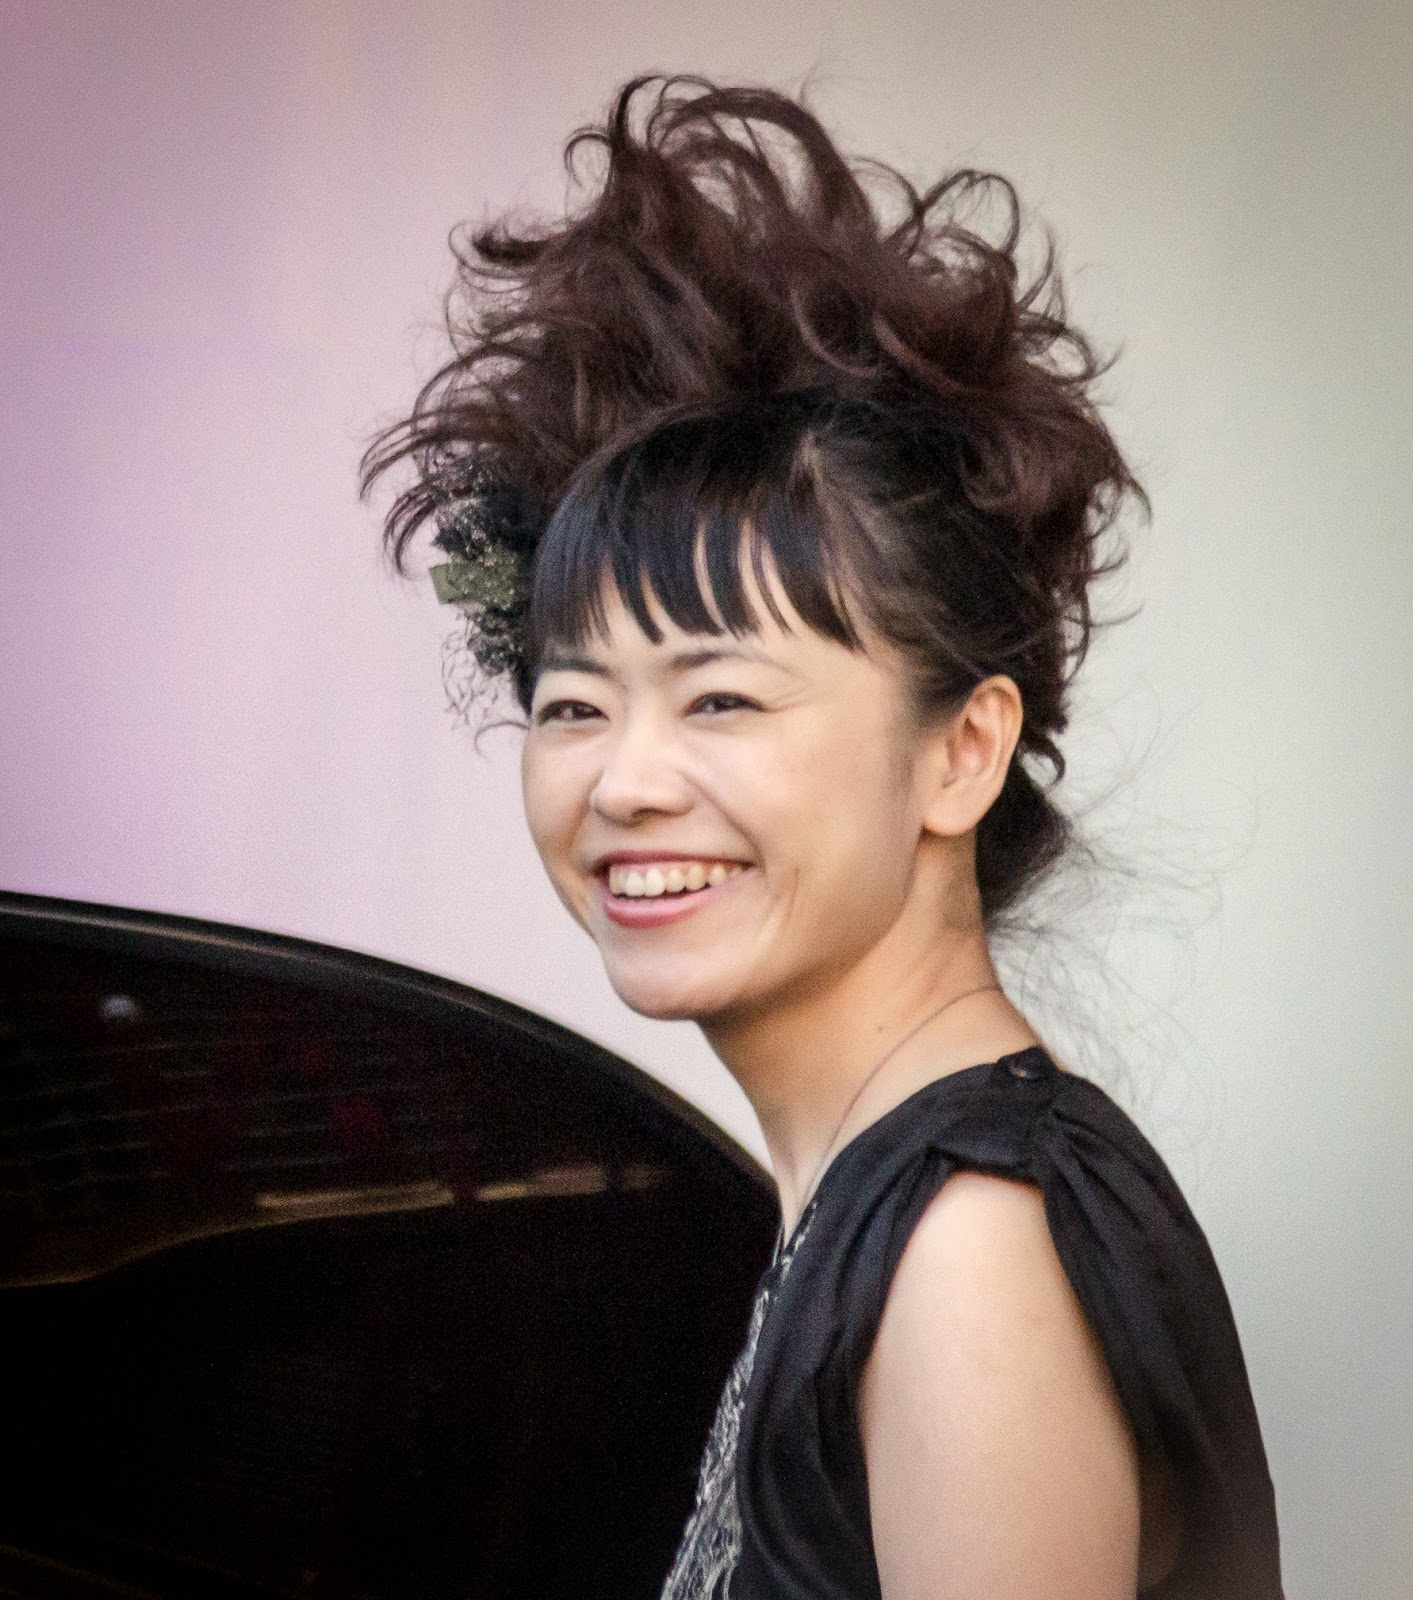 Fats waller tribute albums together with Autumn In New York 2 as well Hiromi Uehara Y Las Profesiones likewise Big Muddy Ashington Jazz Club September additionally Jazz piano. on oscar peterson jazz pianist